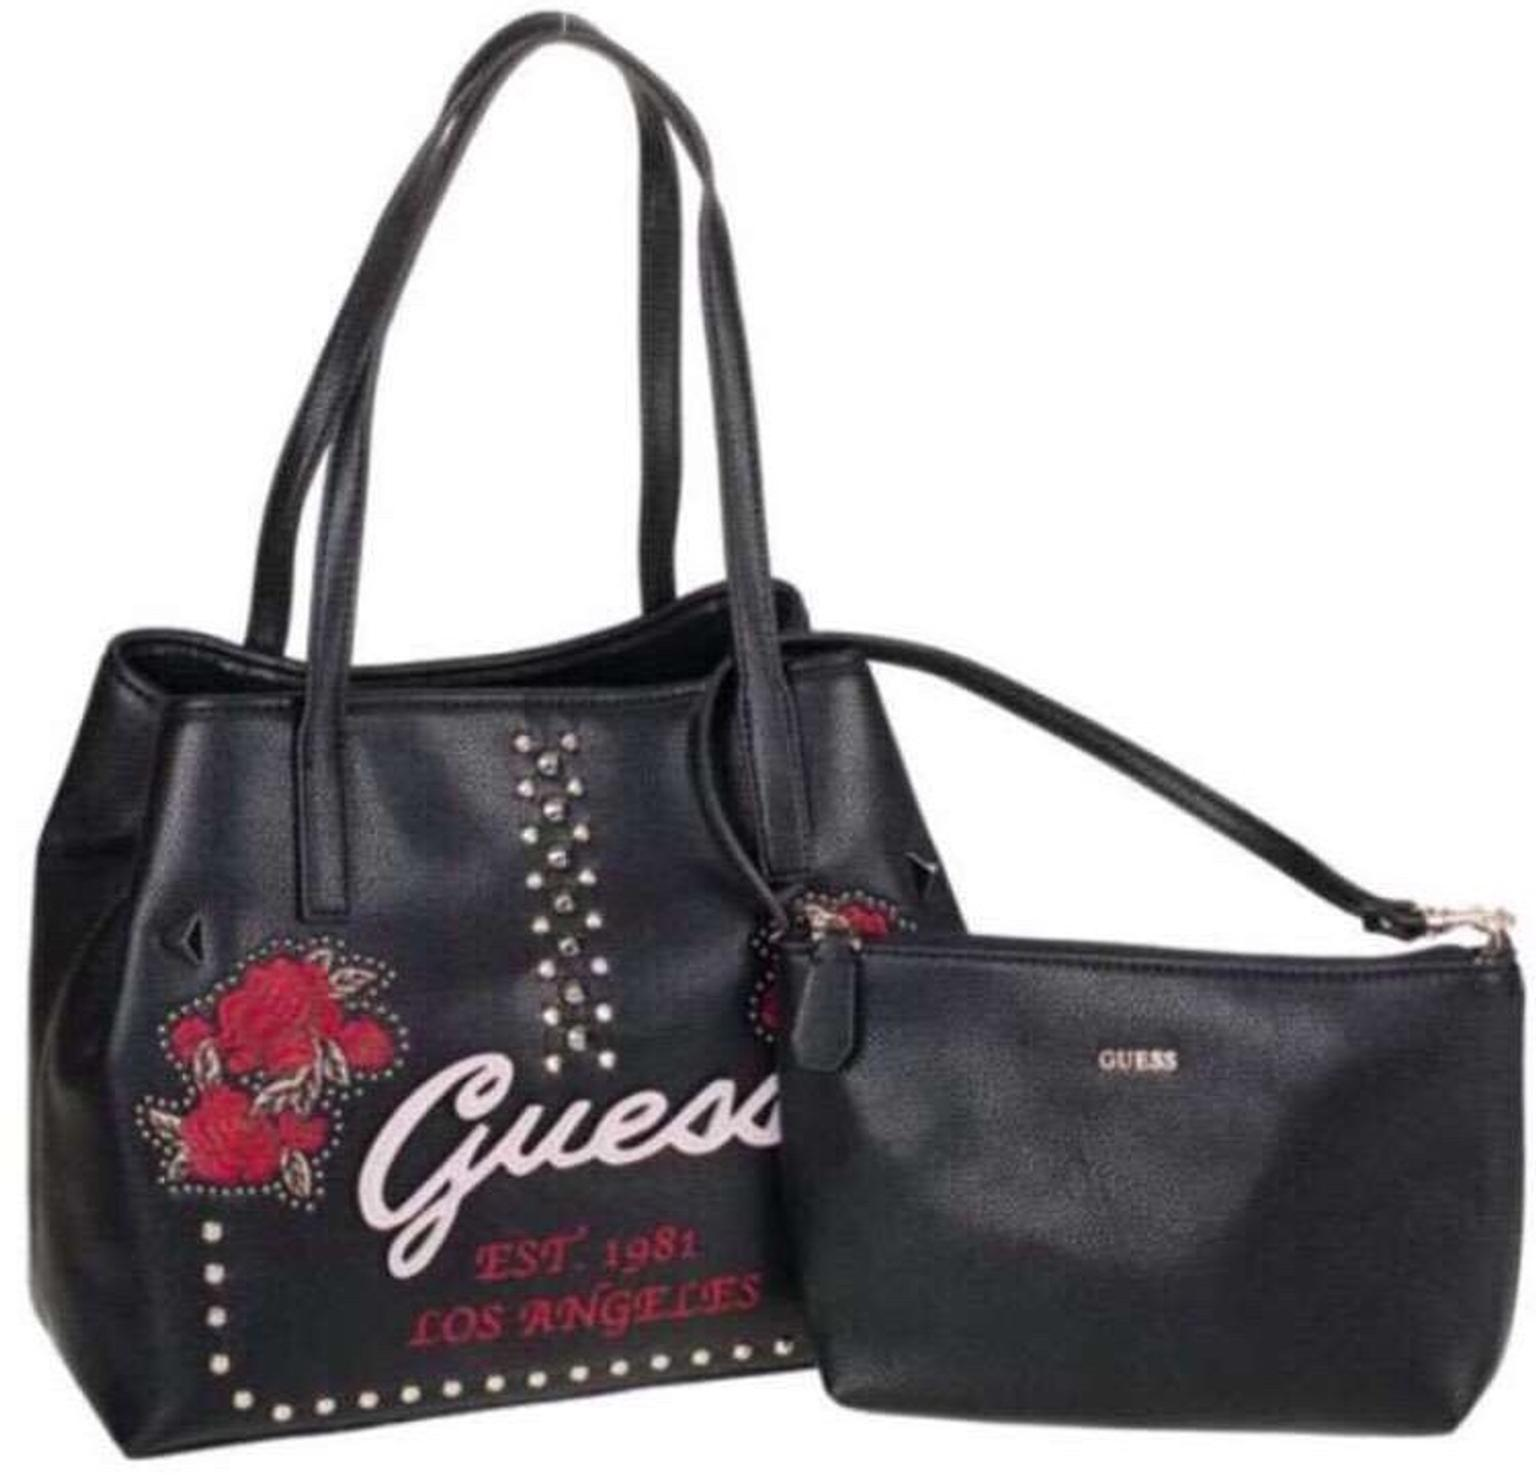 Handtasche Guess Vikky Los Angeles